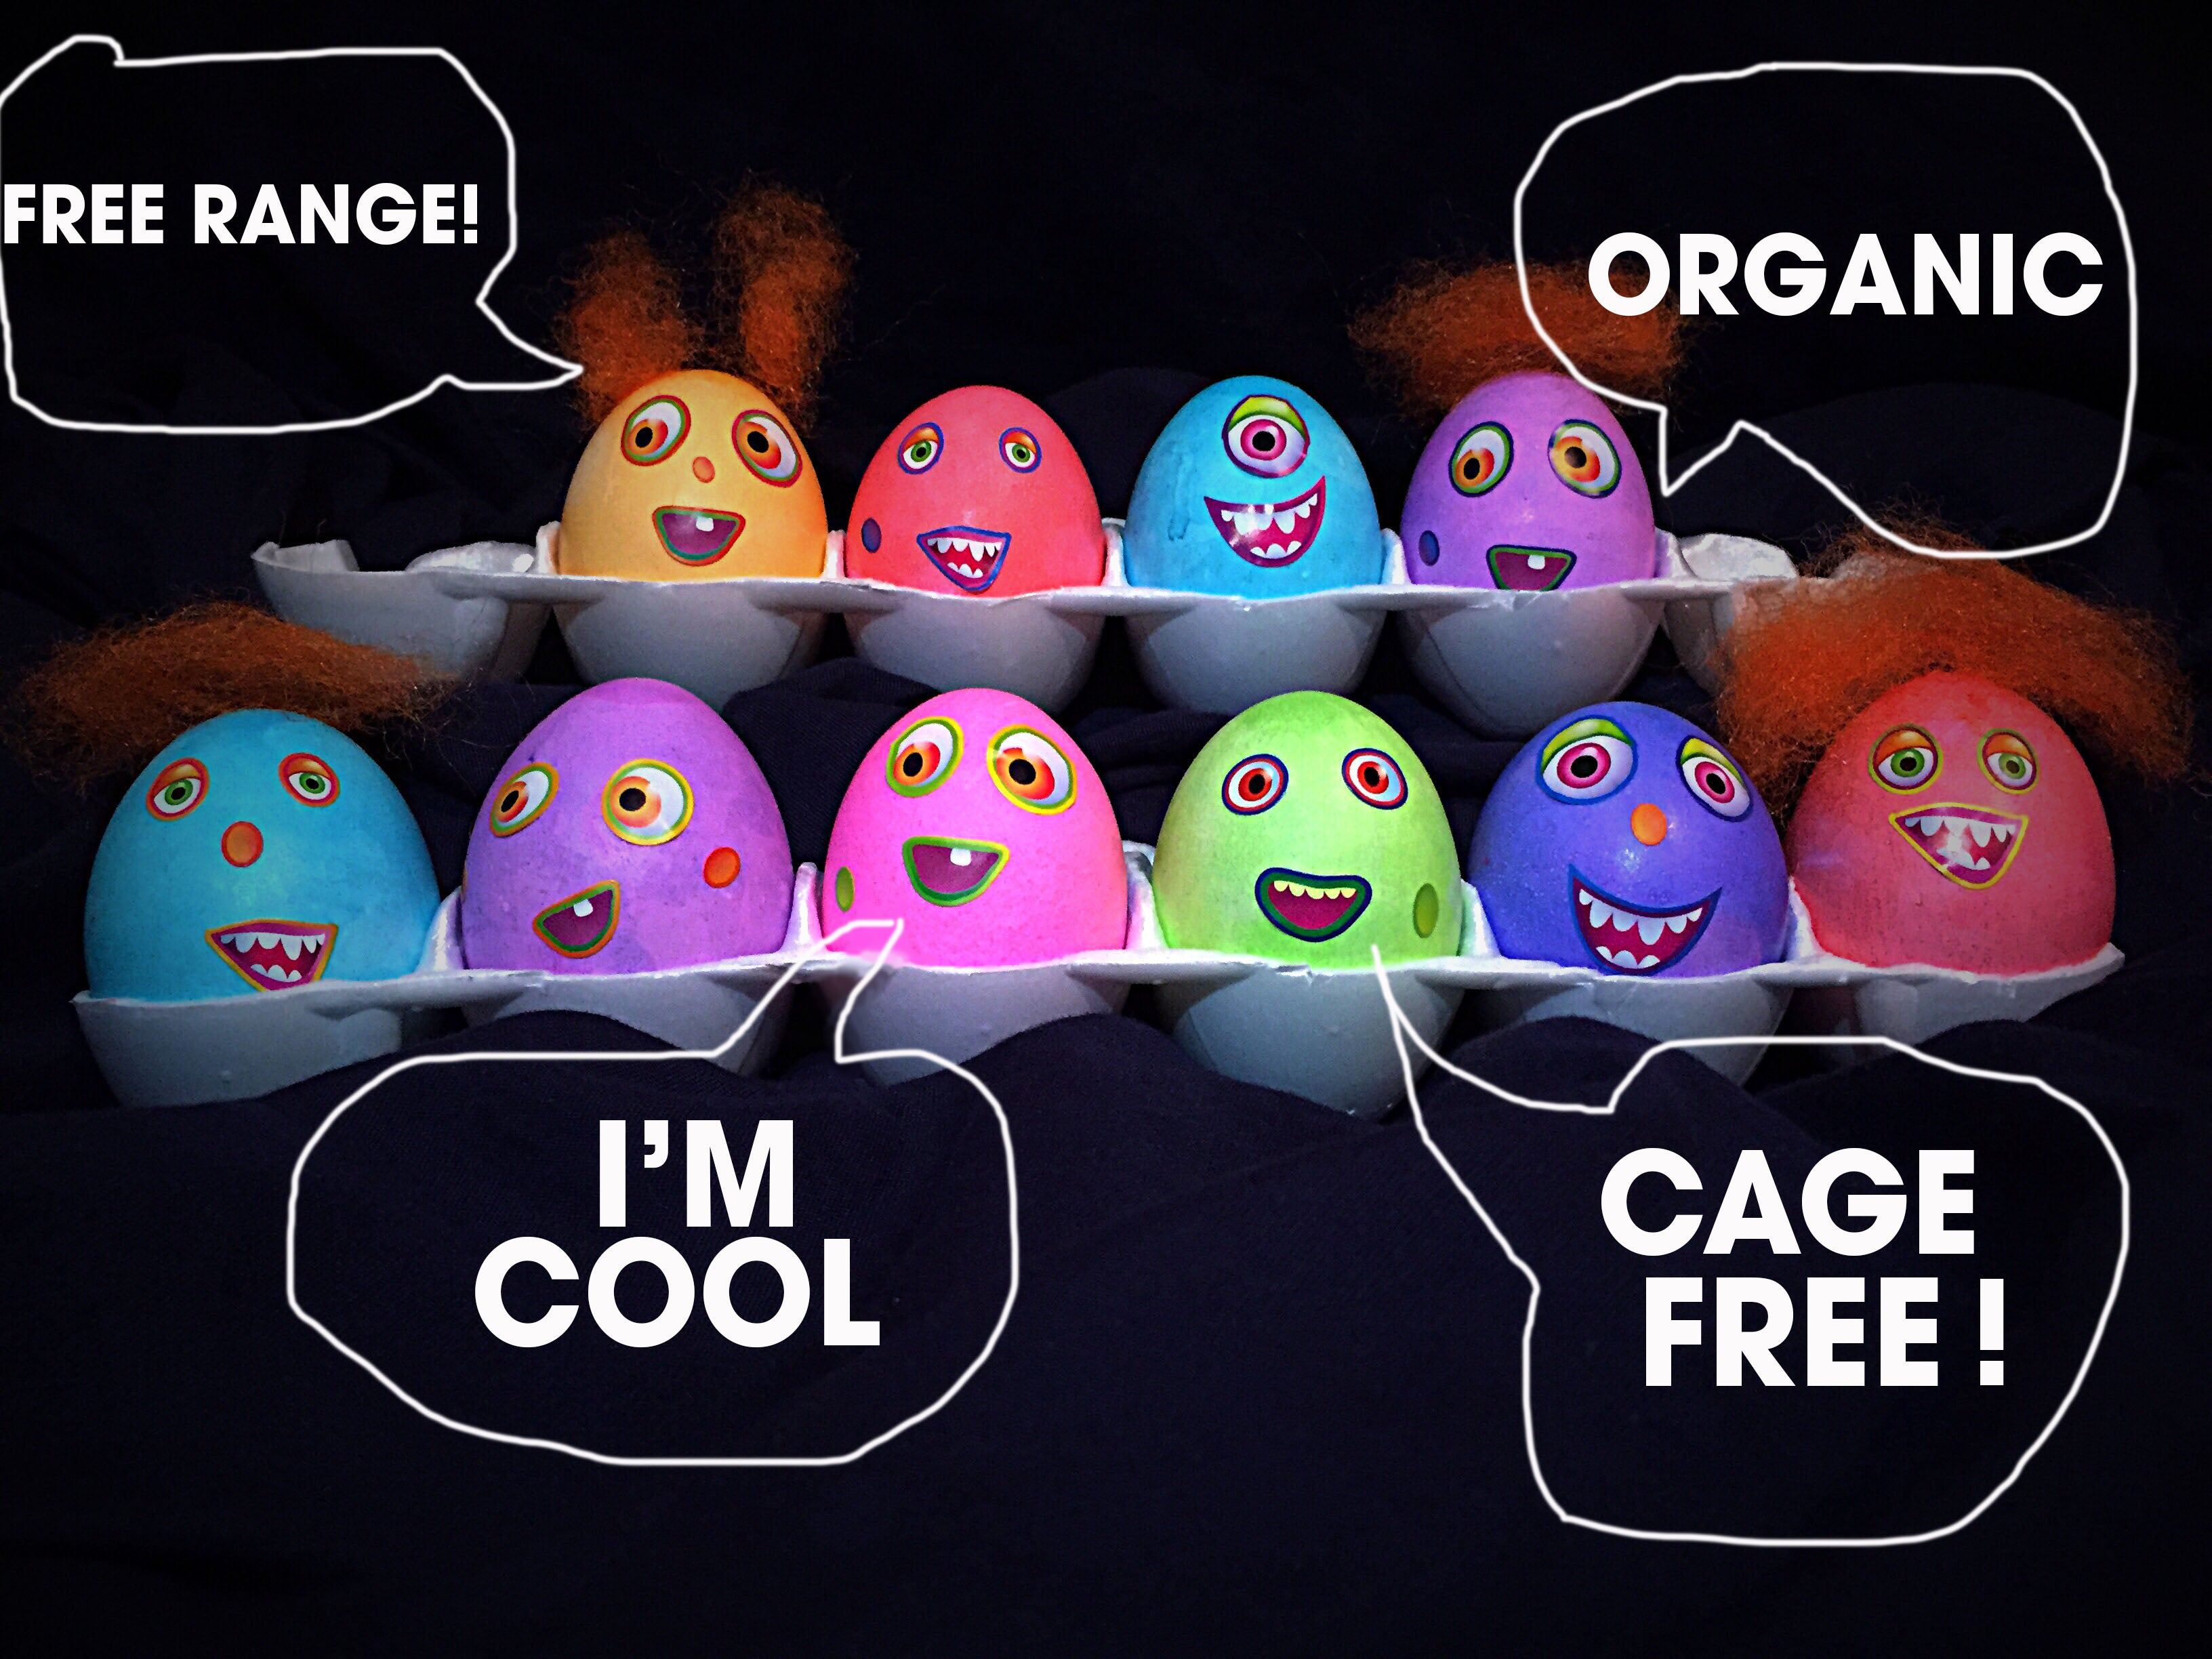 What's the difference between free range, organic, and cage free eggs?